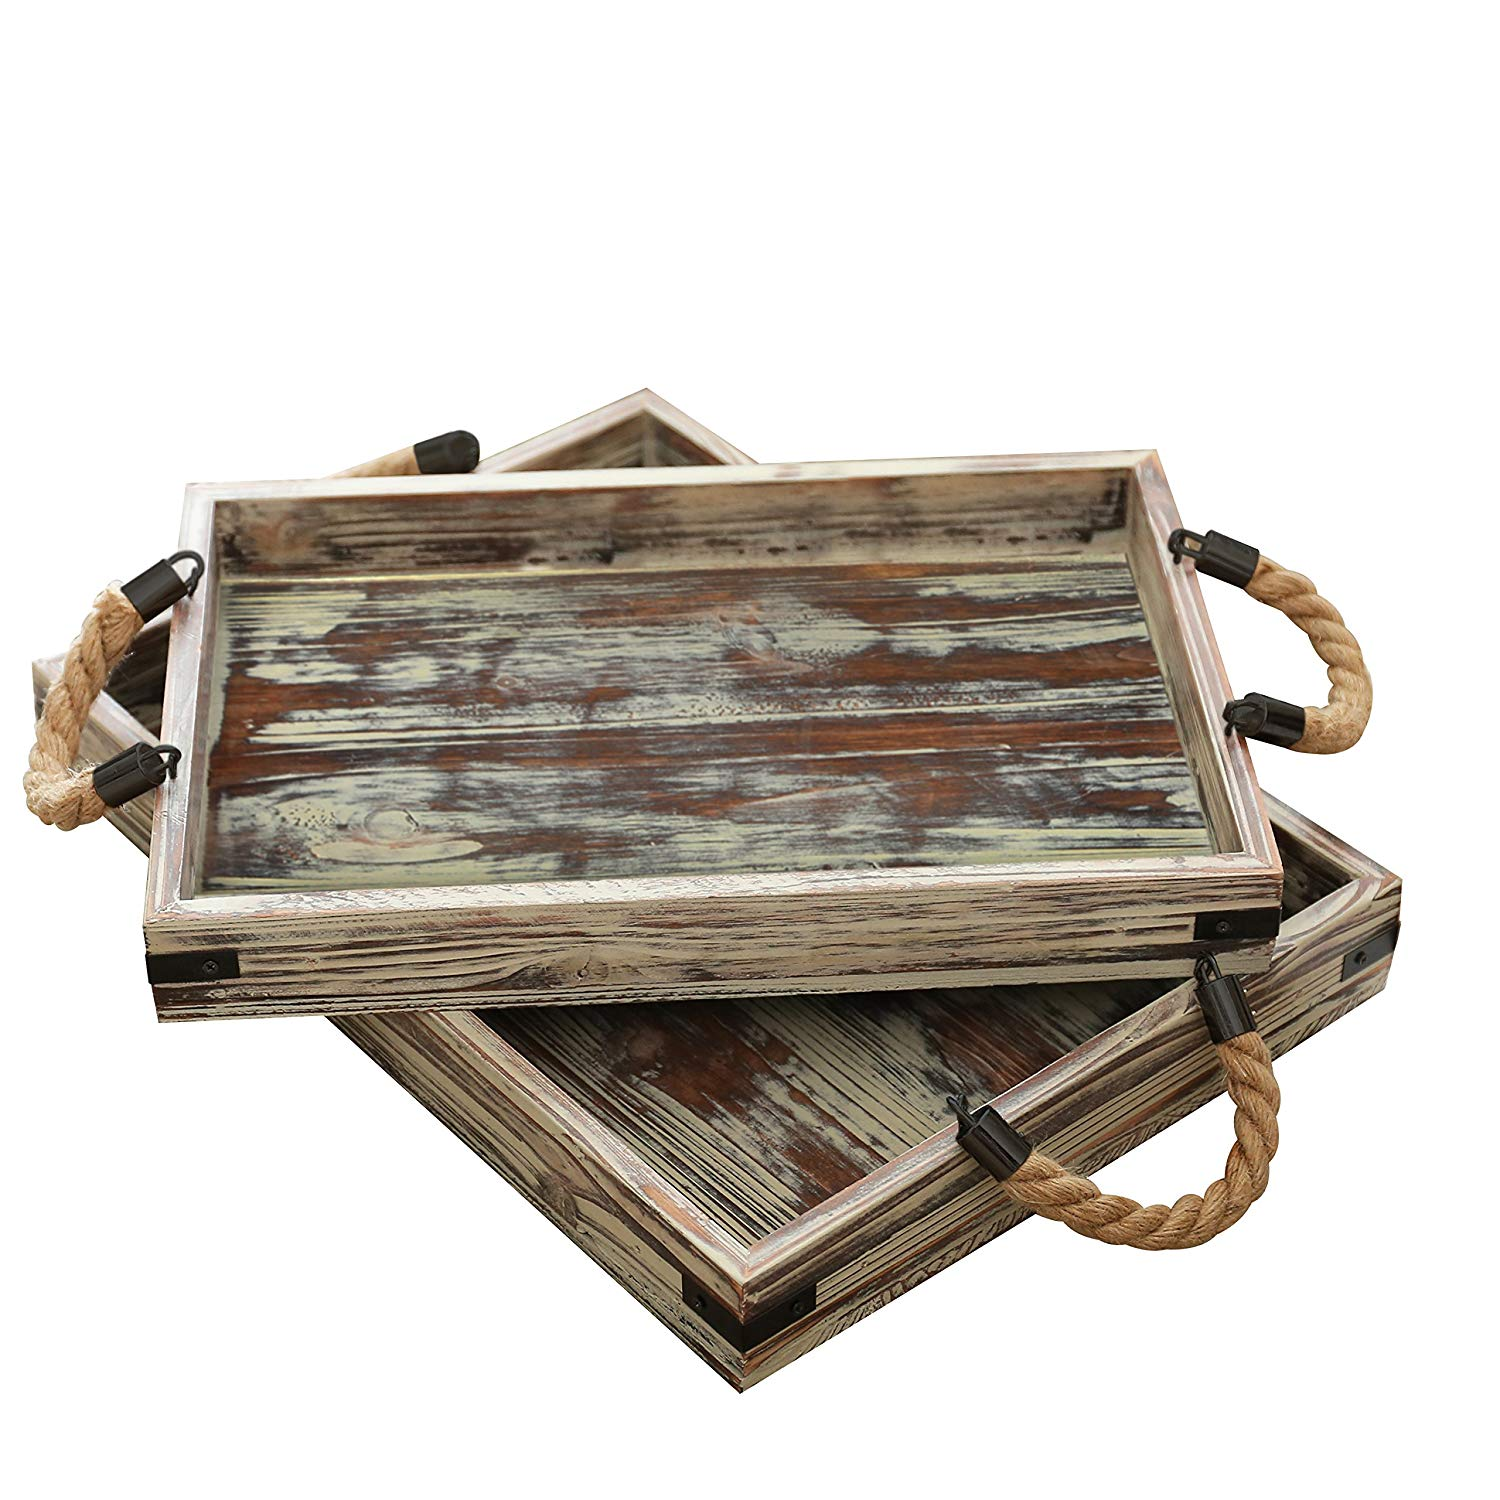 Rustic Wood Serving Tray And Coffee Serving Tray Rectangle Tea Coffee Breakfas Wooden Serving Tray Set Buy Wood Bow And Arrow Set Shabby Chic Wood Serving Tray Granite Serving Tray Tray Weed Tray Packaging Trays Serving Tray Wooden